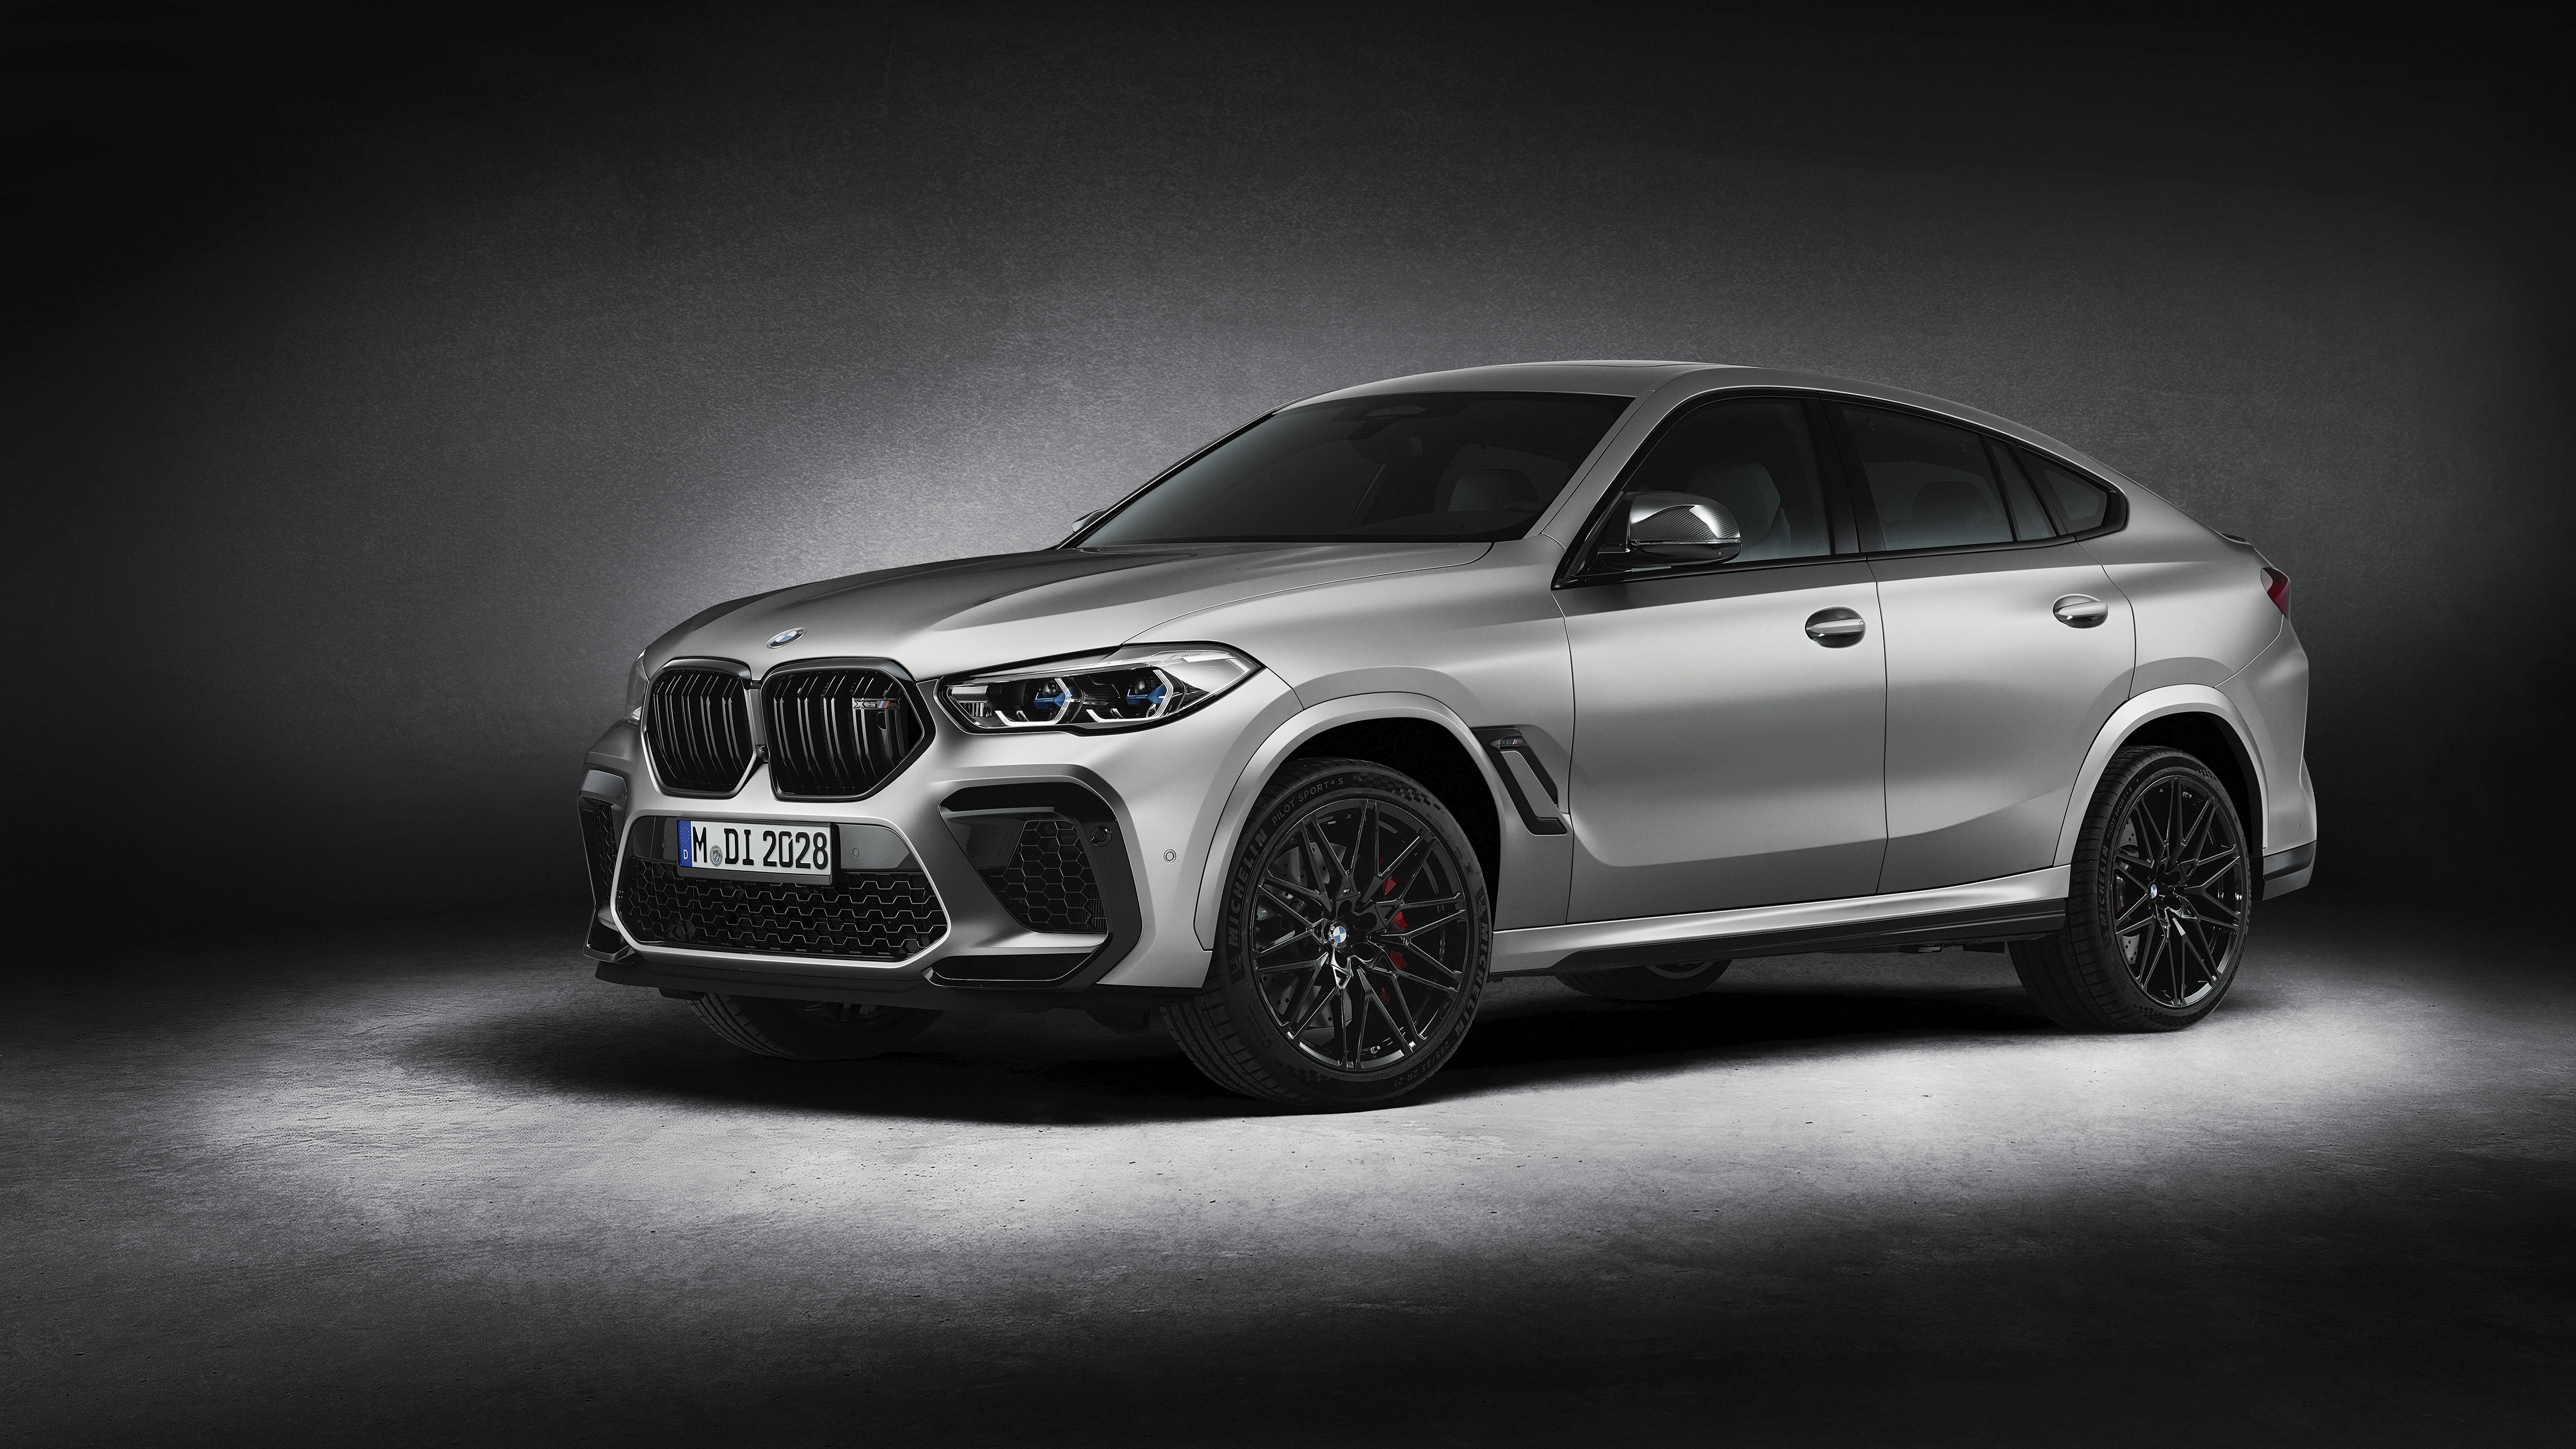 Bmw X6 M Competition First Edition 2021 5k Wallpaper Hd Car Wallpapers Id 16251